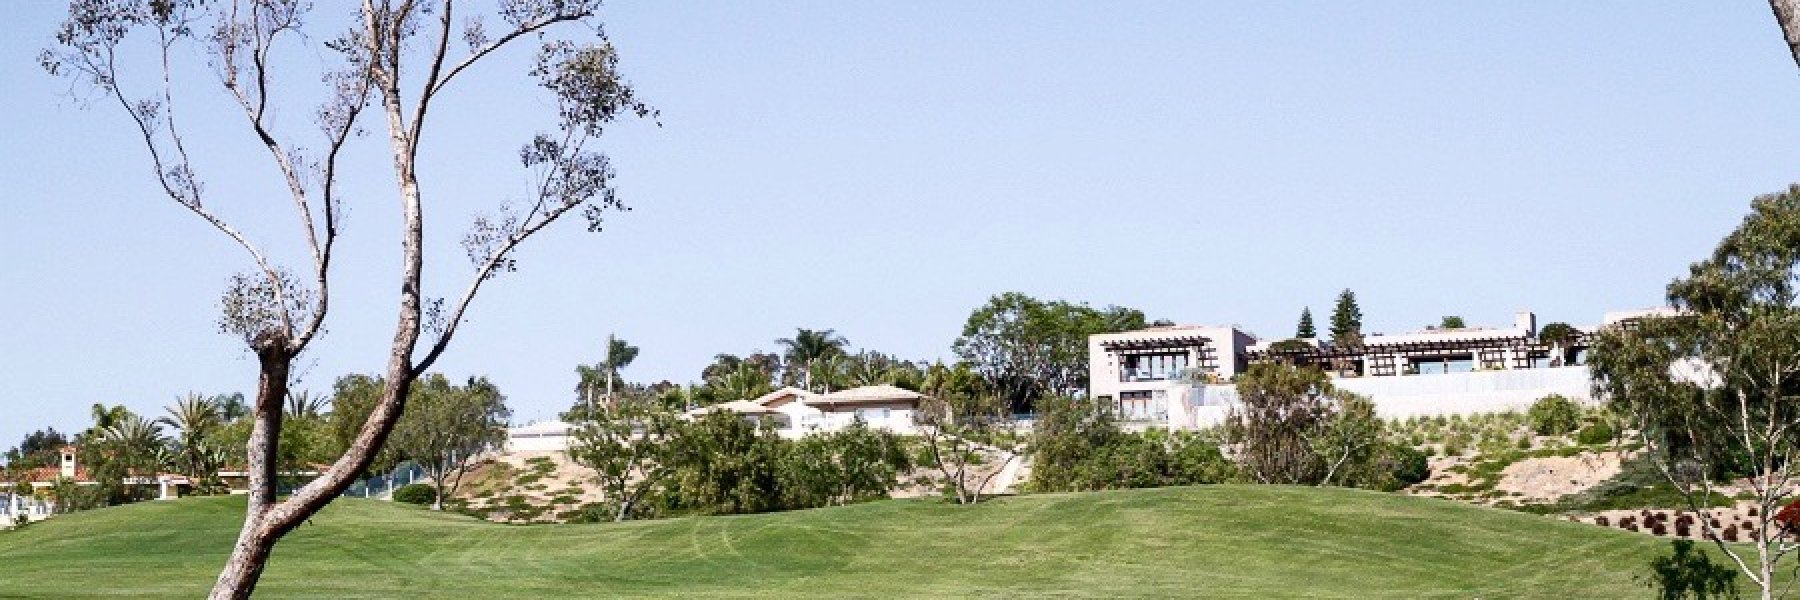 Rancho La Cima is a community of homes in San Diego California